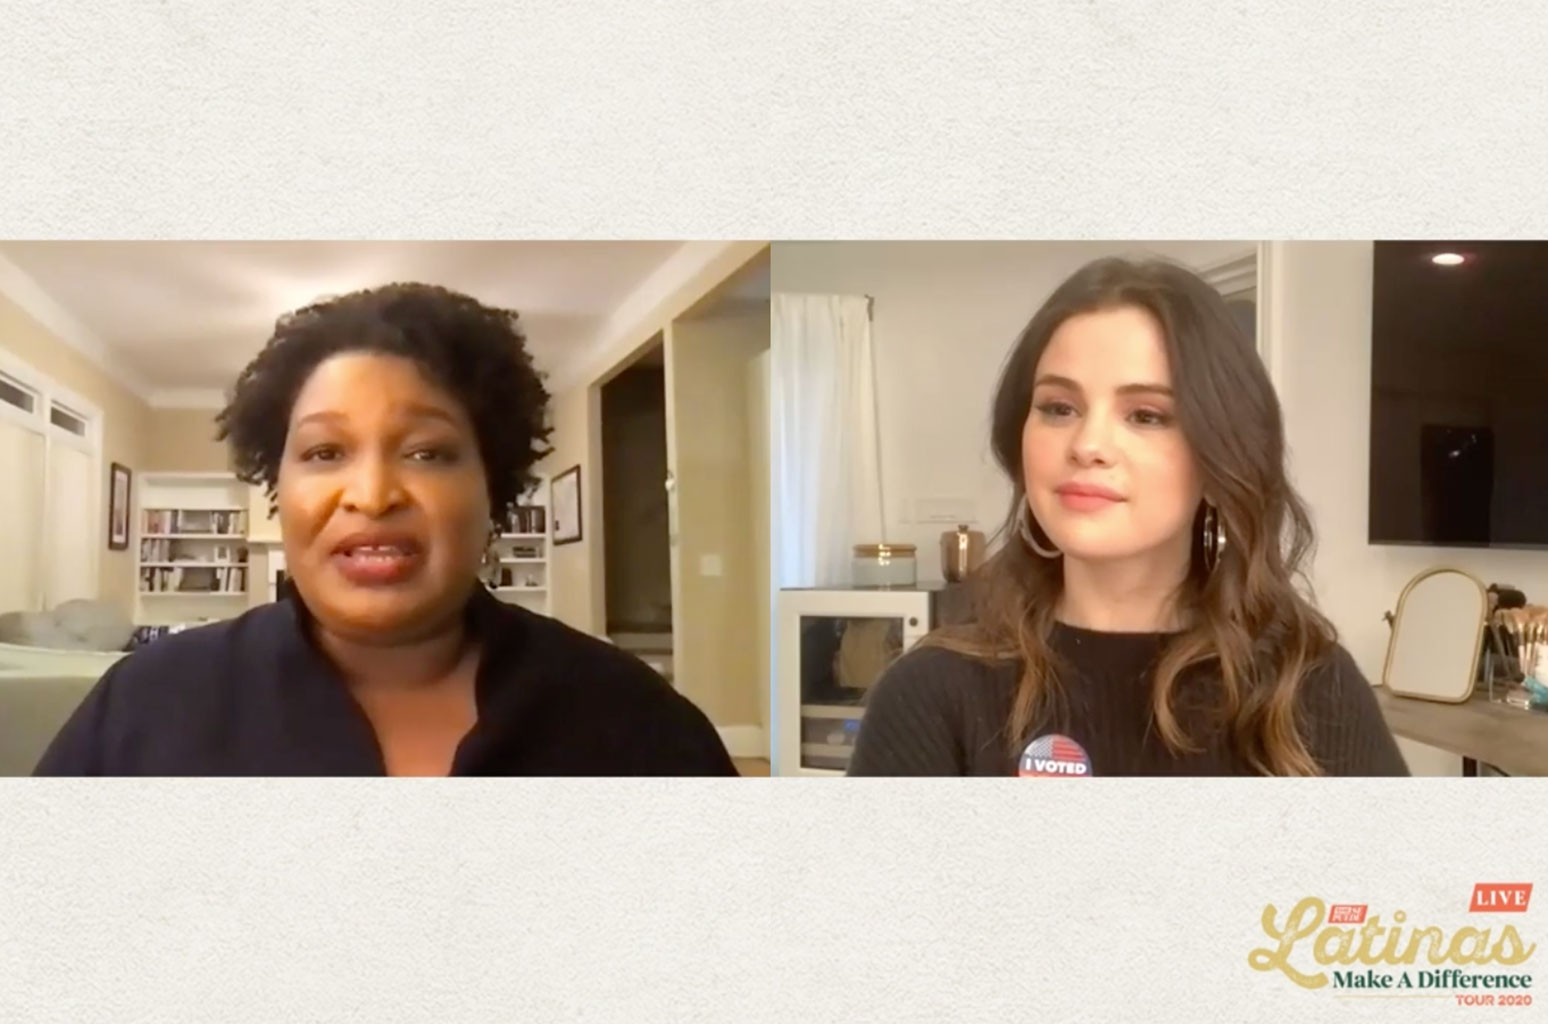 Selena Gomez and Stacey Abrams